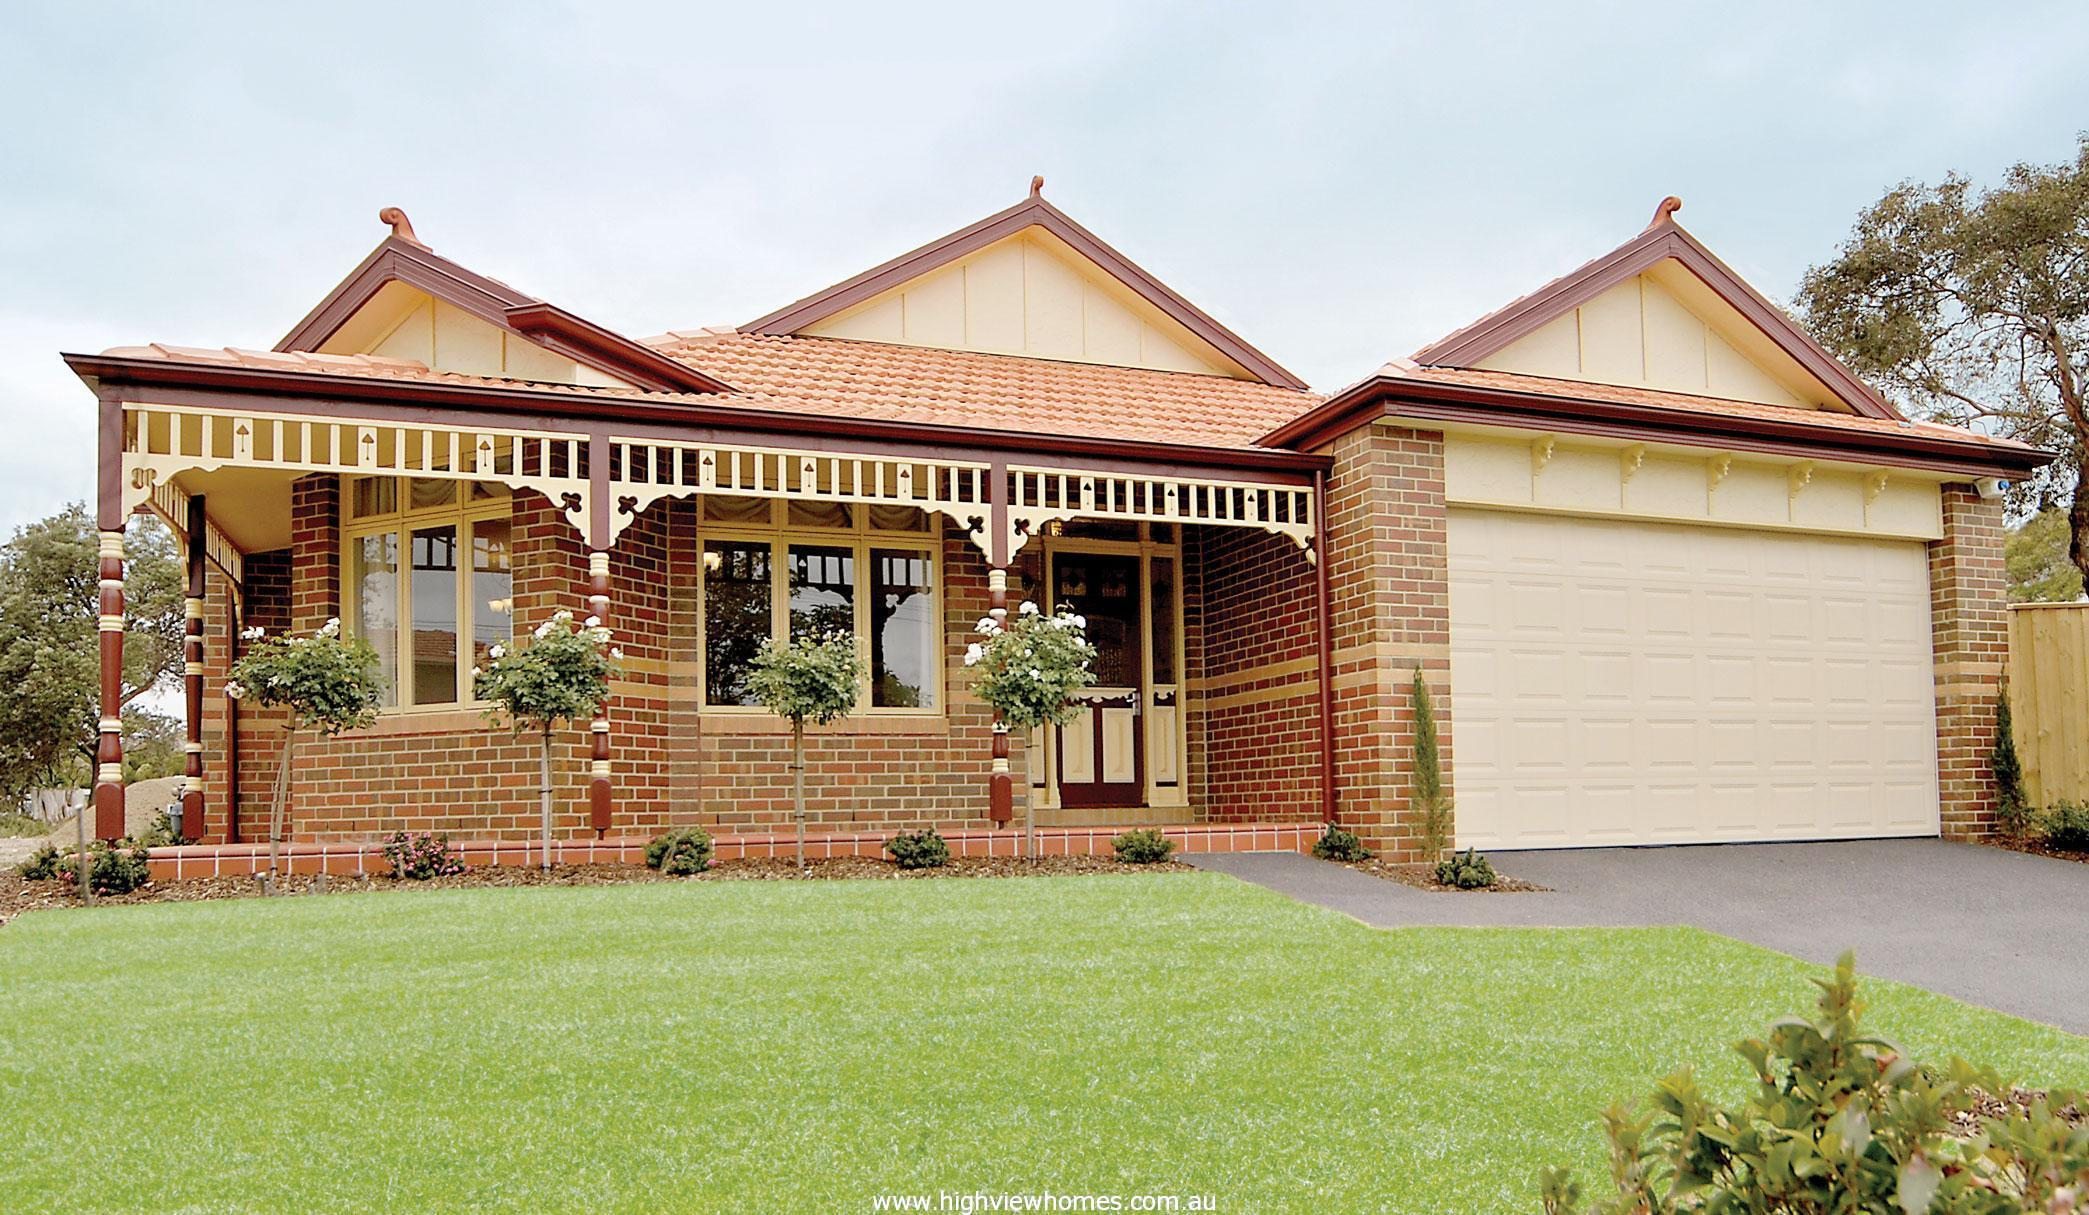 Federation style homes to build sydney